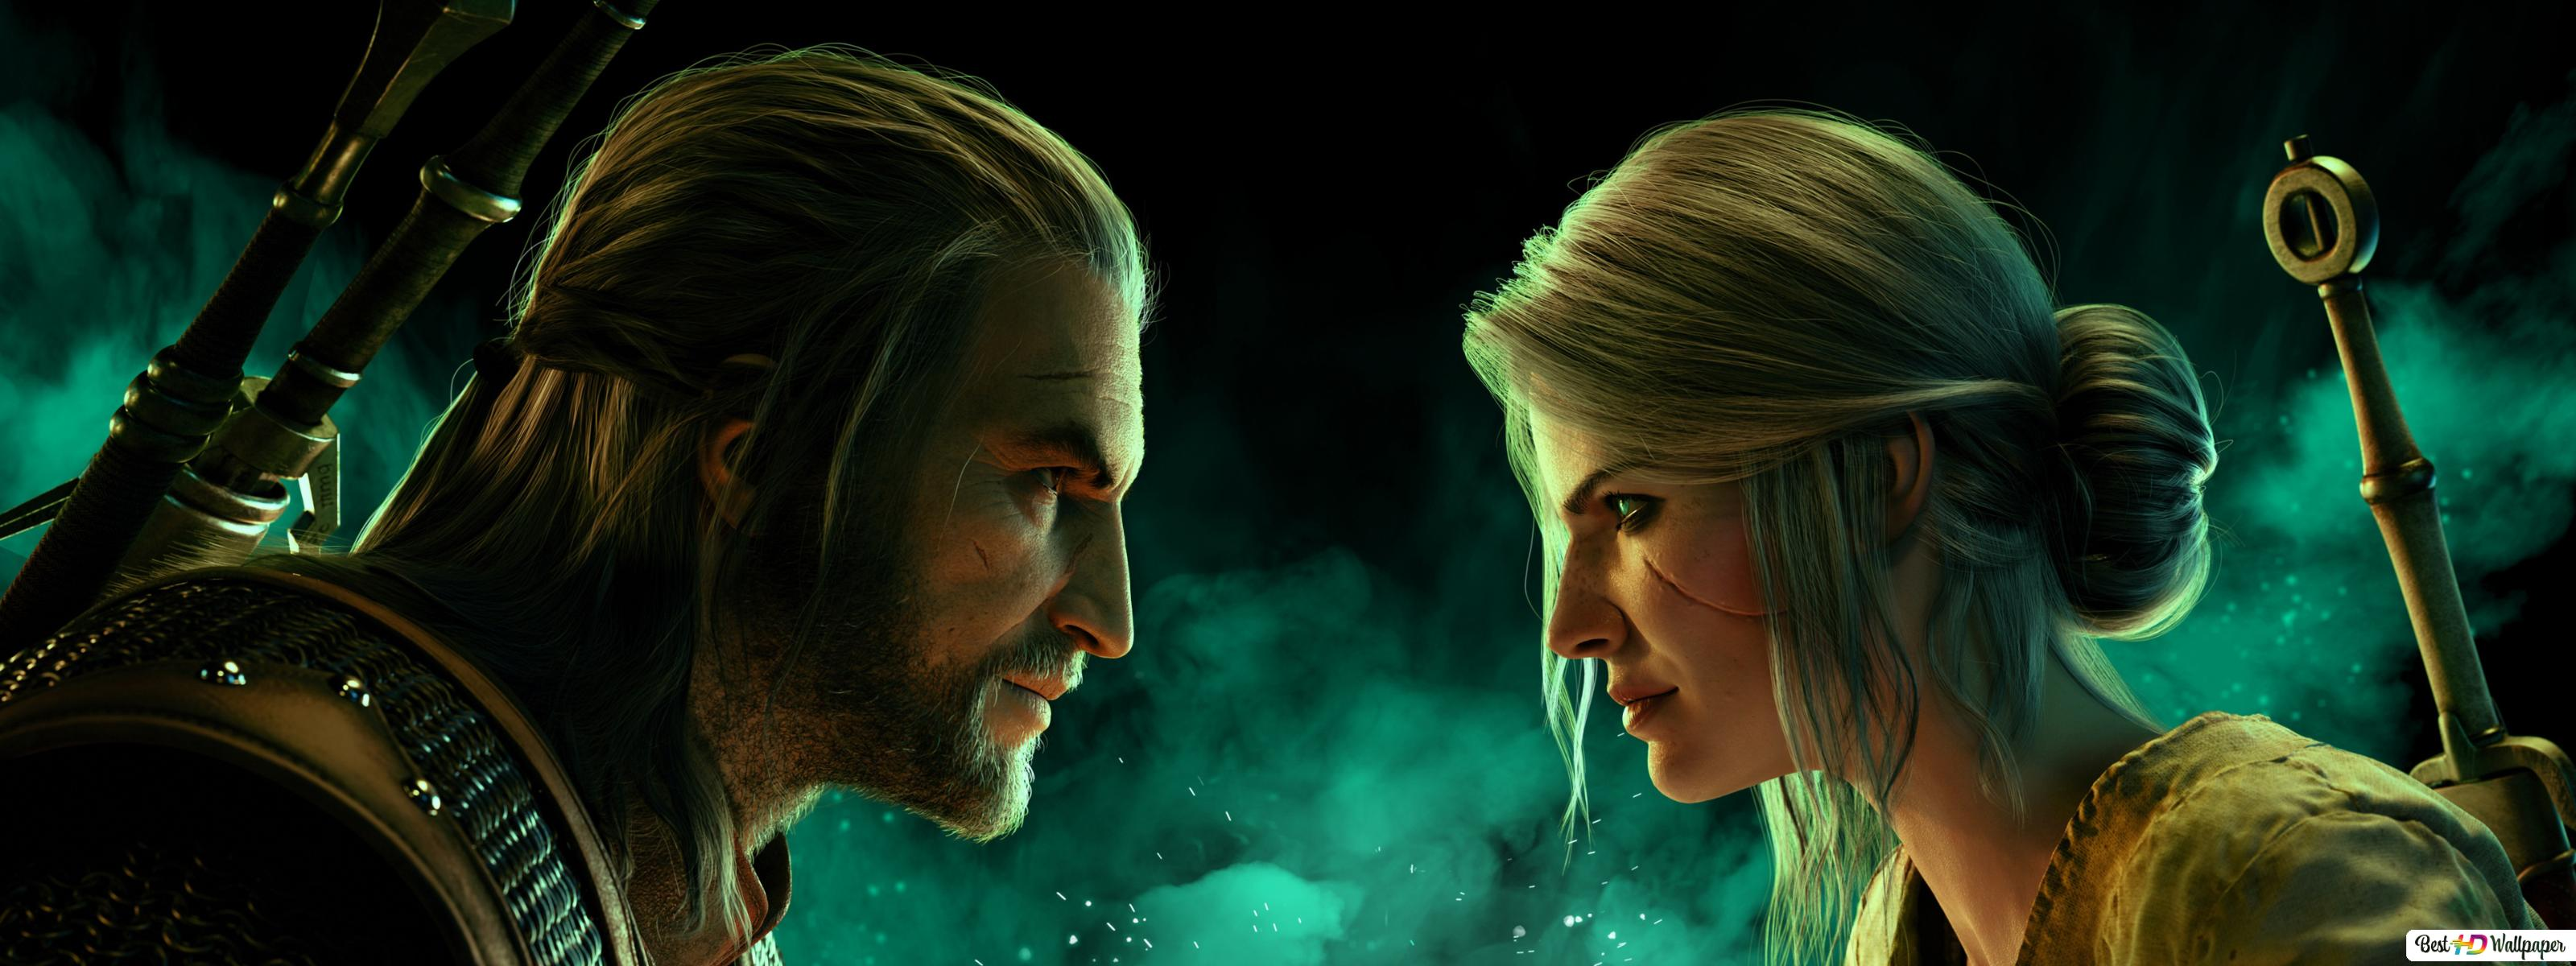 The Witcher 3 Wild Hunt Ciri And Geralt Of Rivia Hd Wallpaper